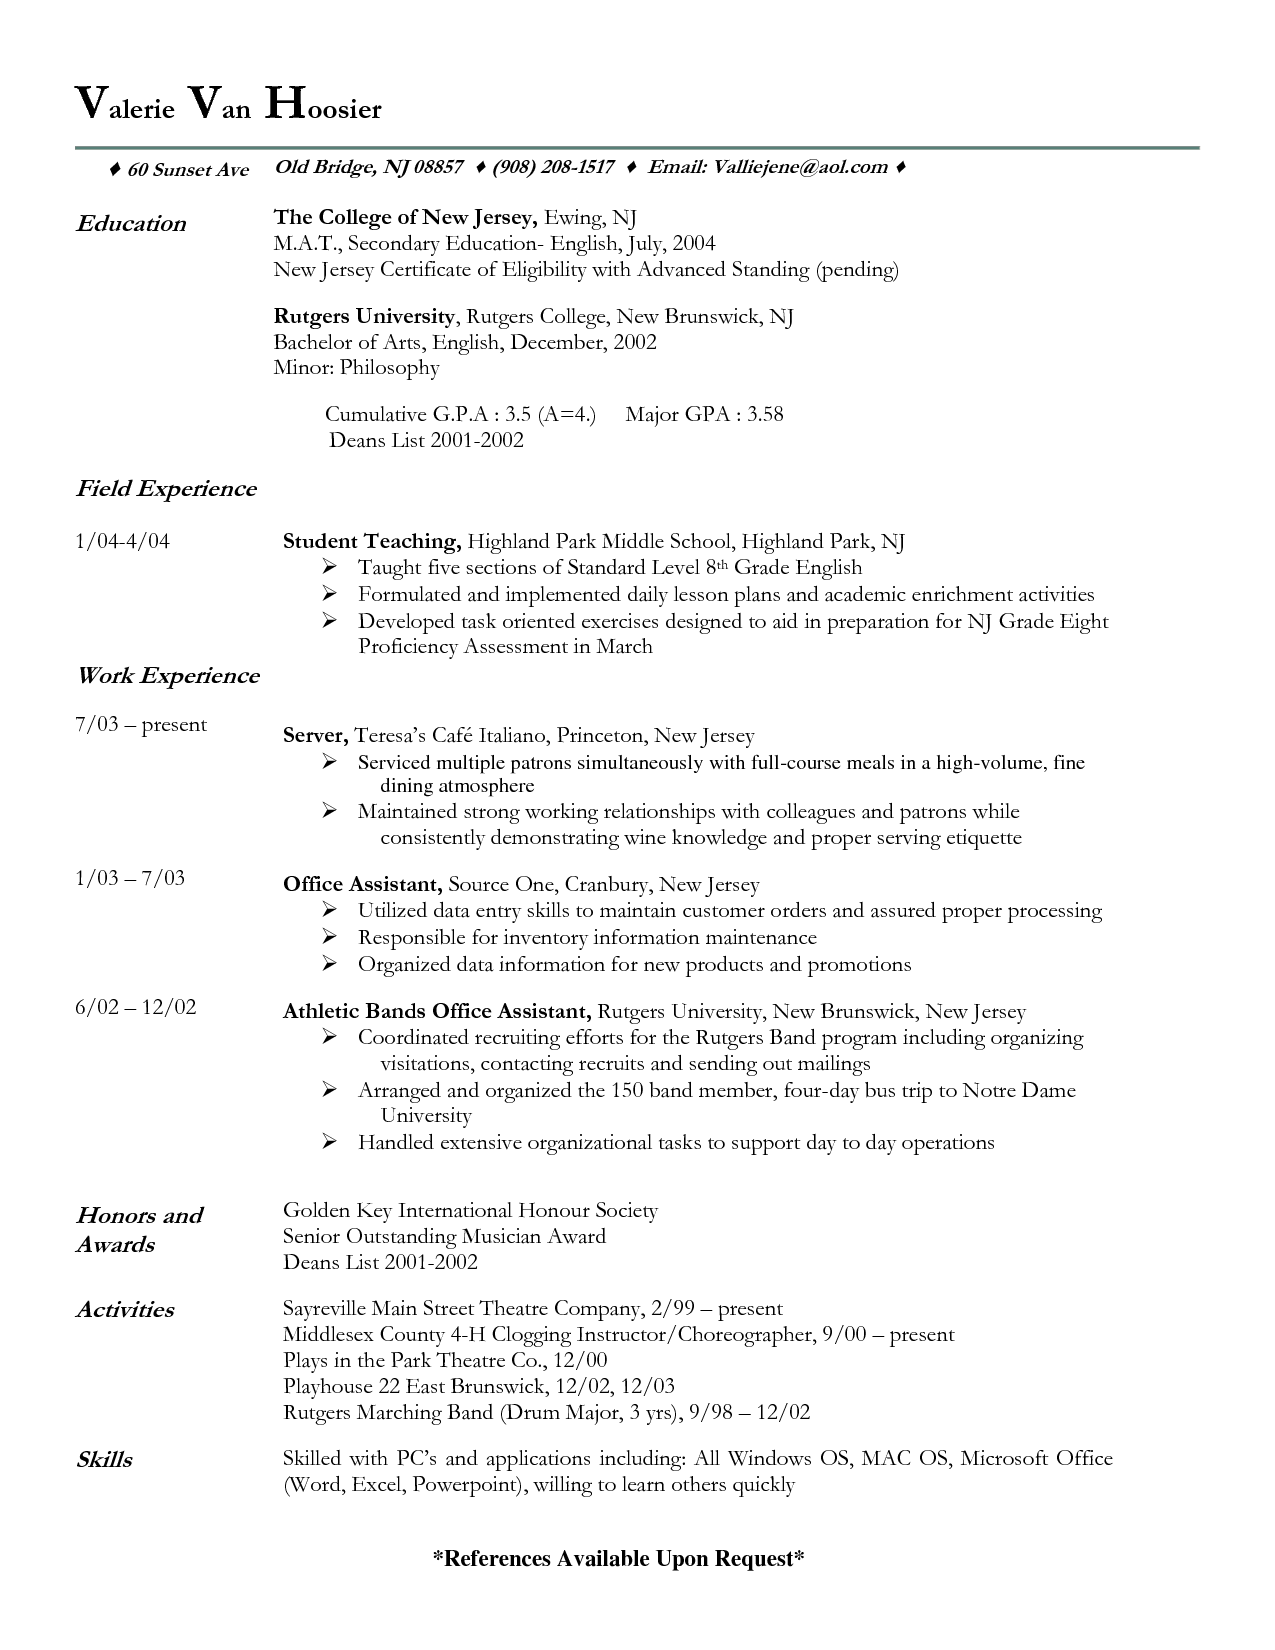 Waitress Resume Skills Example Fine Dining Server Resume Sample  James  Pinterest